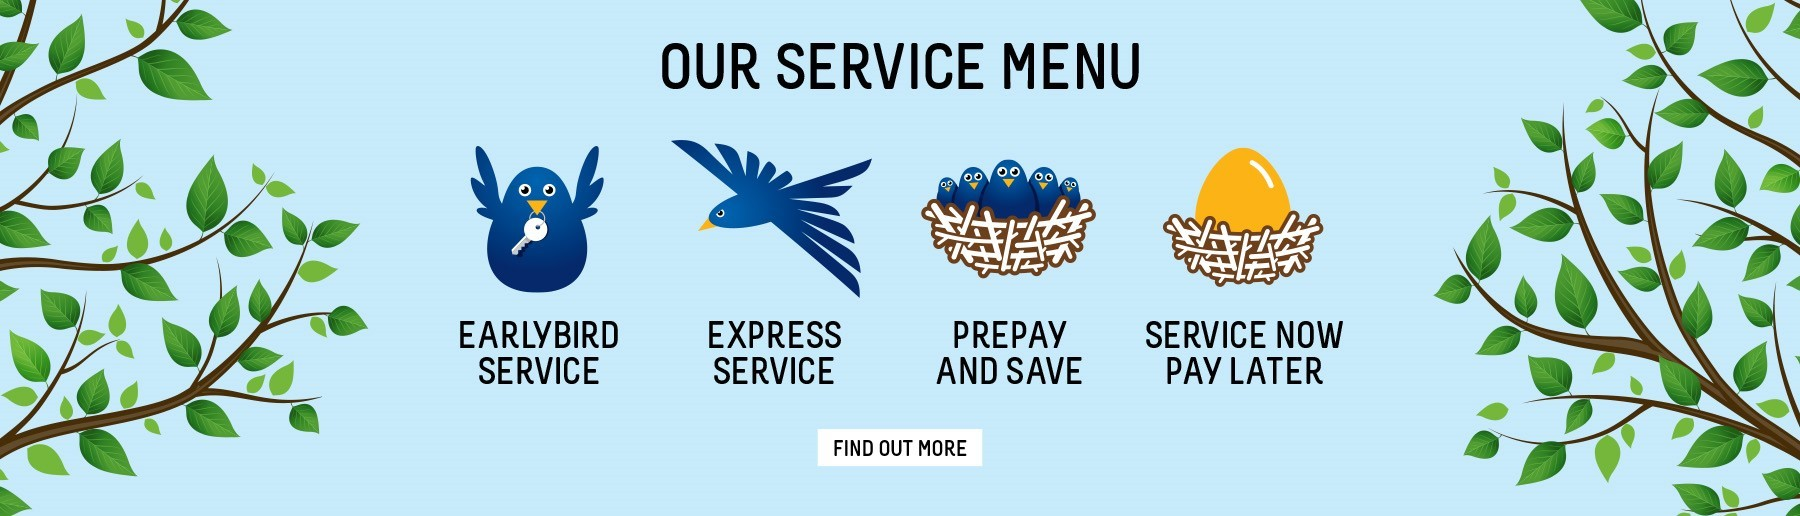 Make your service convenient with Yarra Hyundai's Service Menu